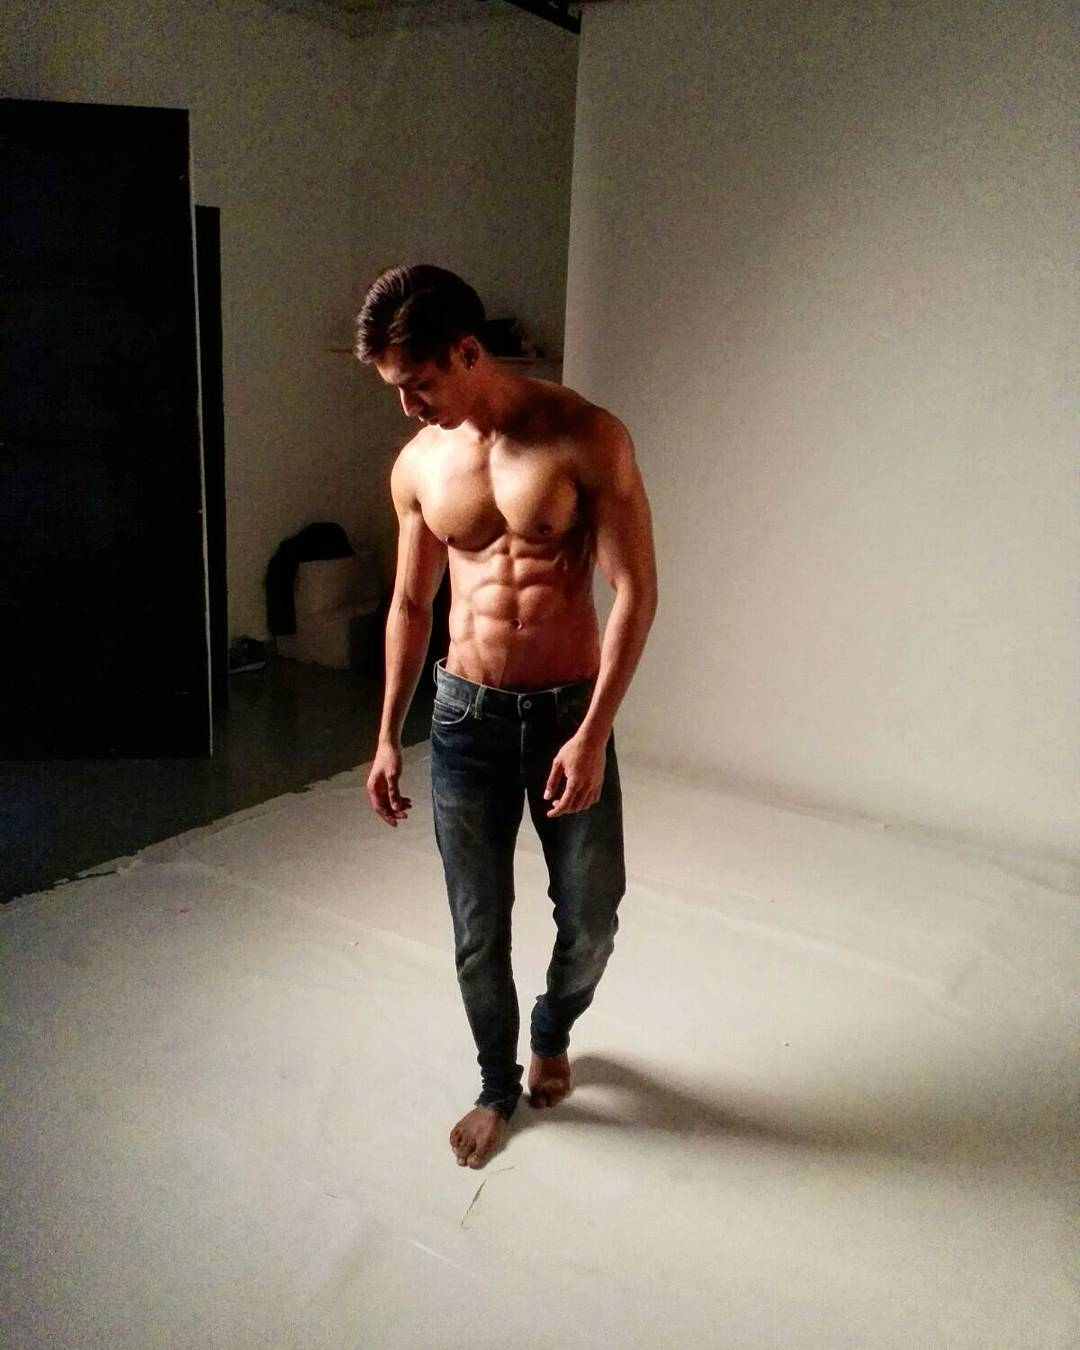 bachelor-of-the-week-from-manila-philippines-asias-largest-gay-travel-guide-for-gayparties-hotels-gay-bars-and-saunas-4